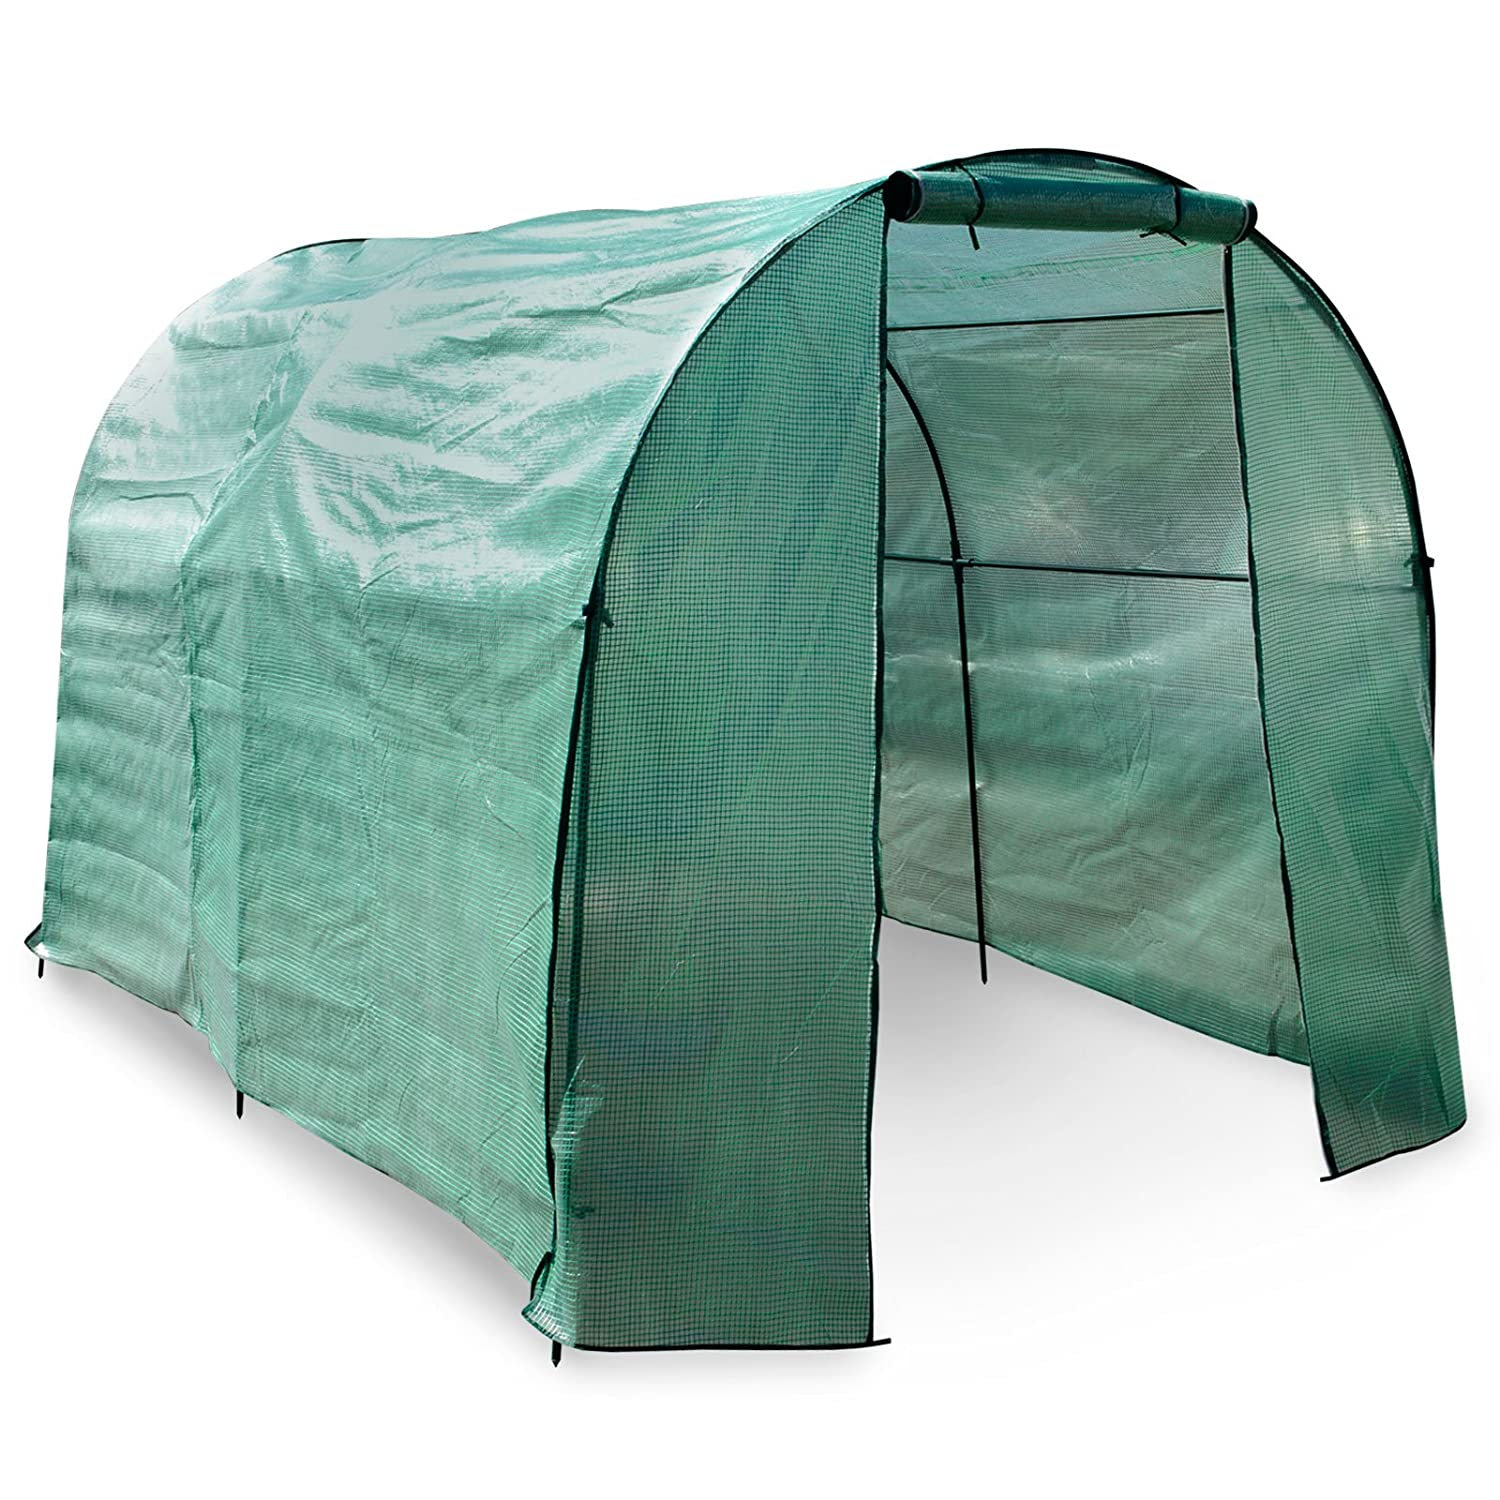 casa pura Greenhouse, Libre | Large Grow Tent (300 x 190 x 190 cm) | Includes Ground Pegs